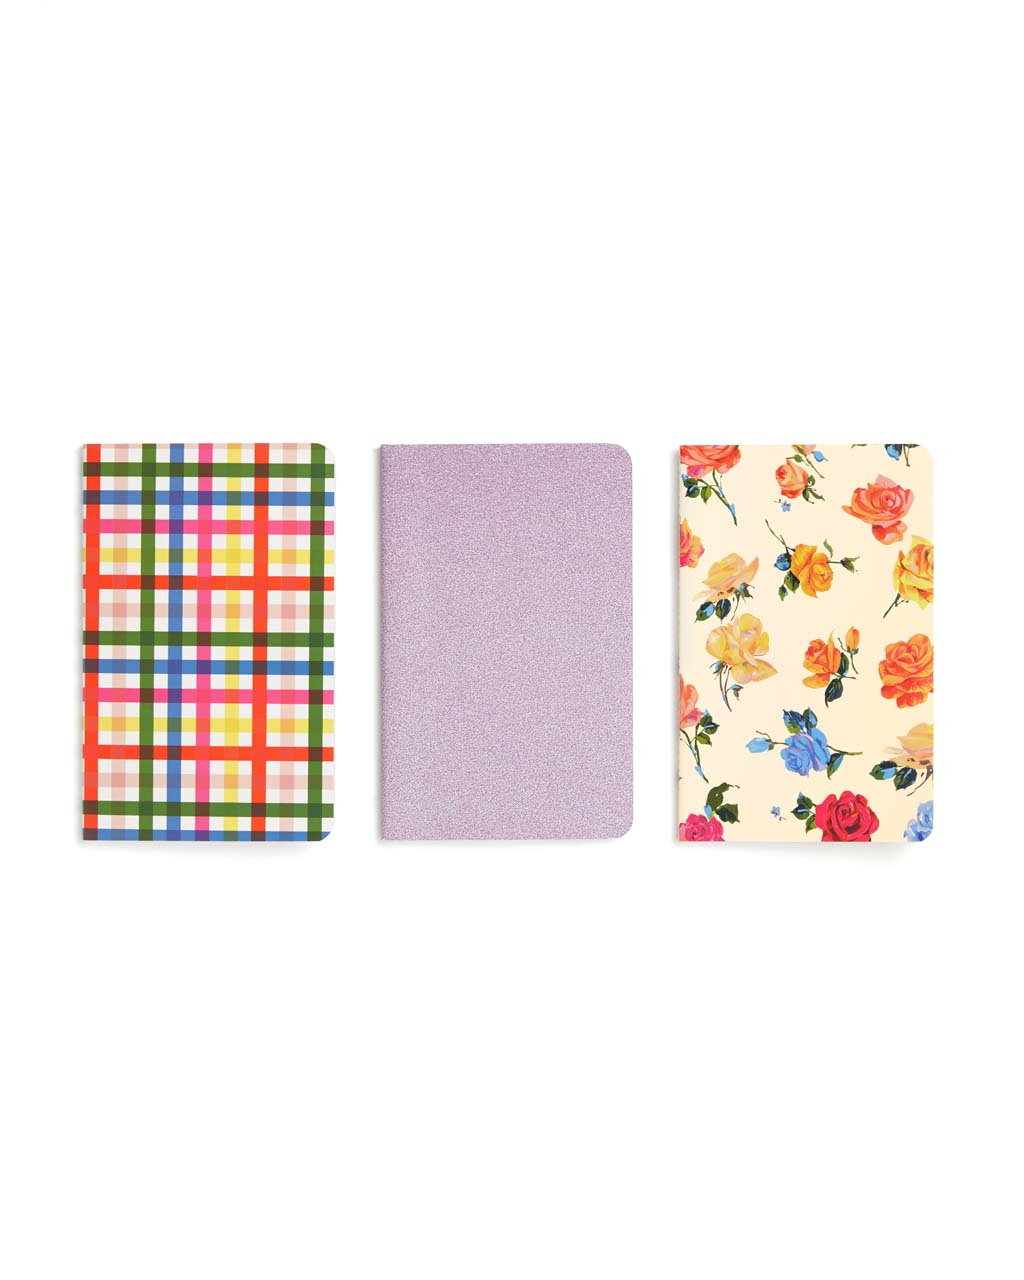 This notebook set includes three unique styles: rainbow plaid, glitter pink, and bright floral.